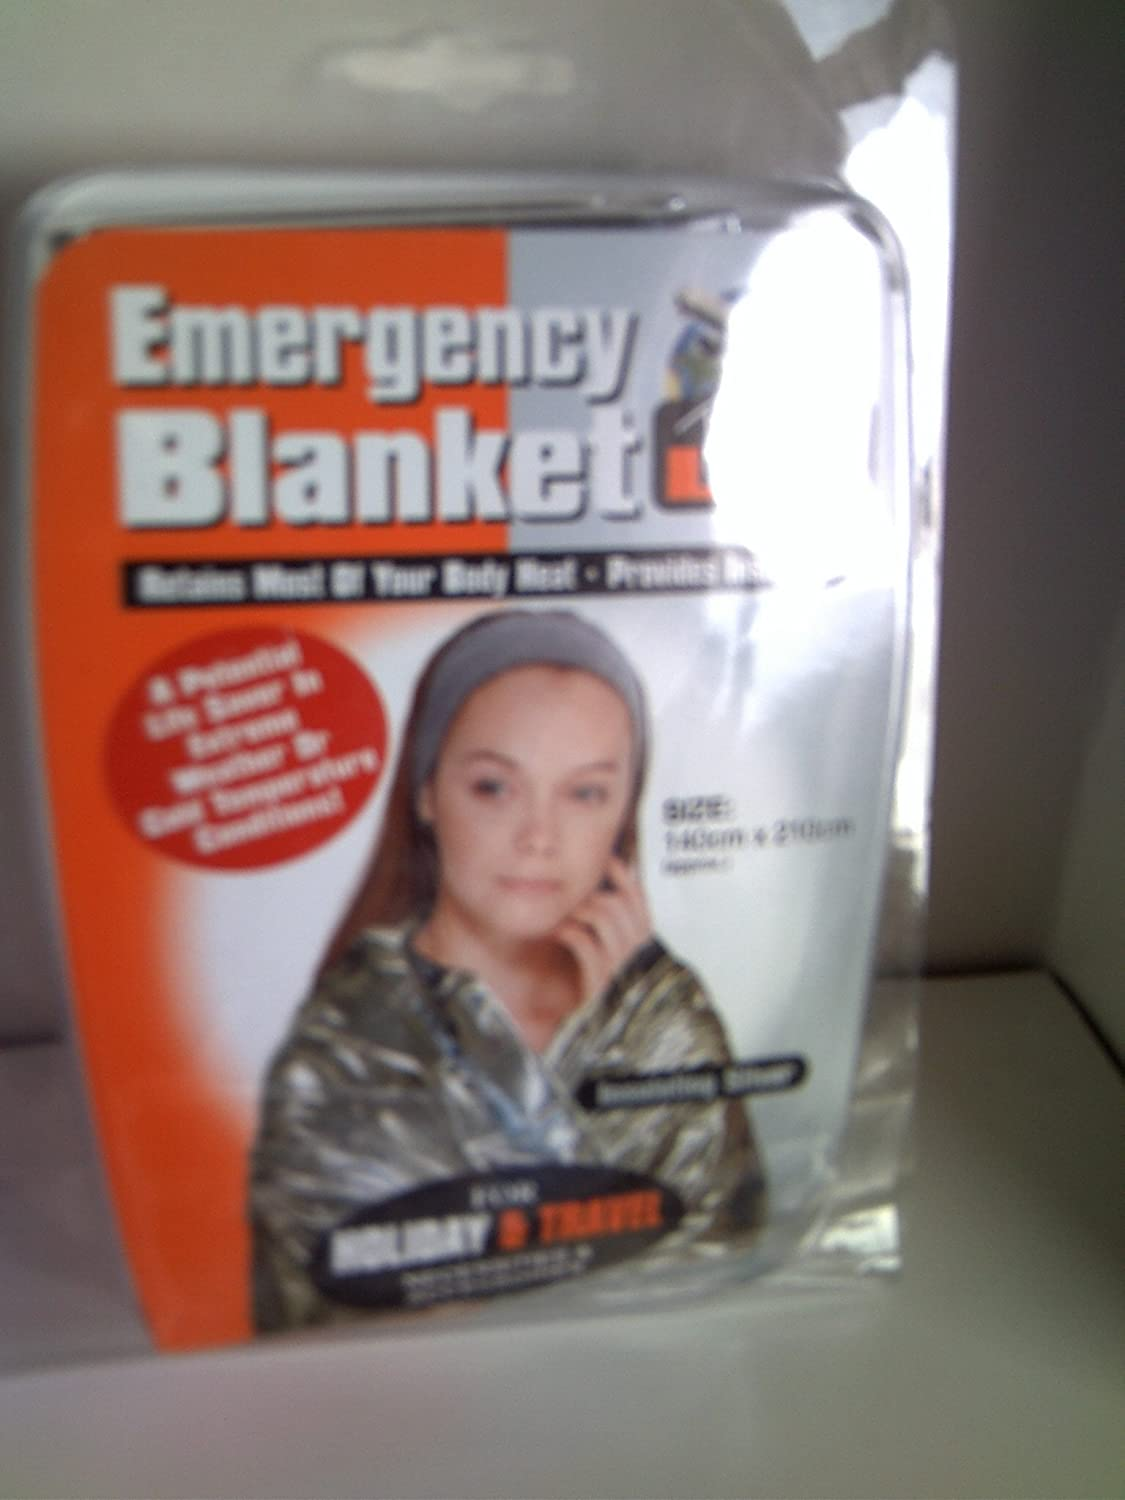 EMERGENCY BLANKET PMS